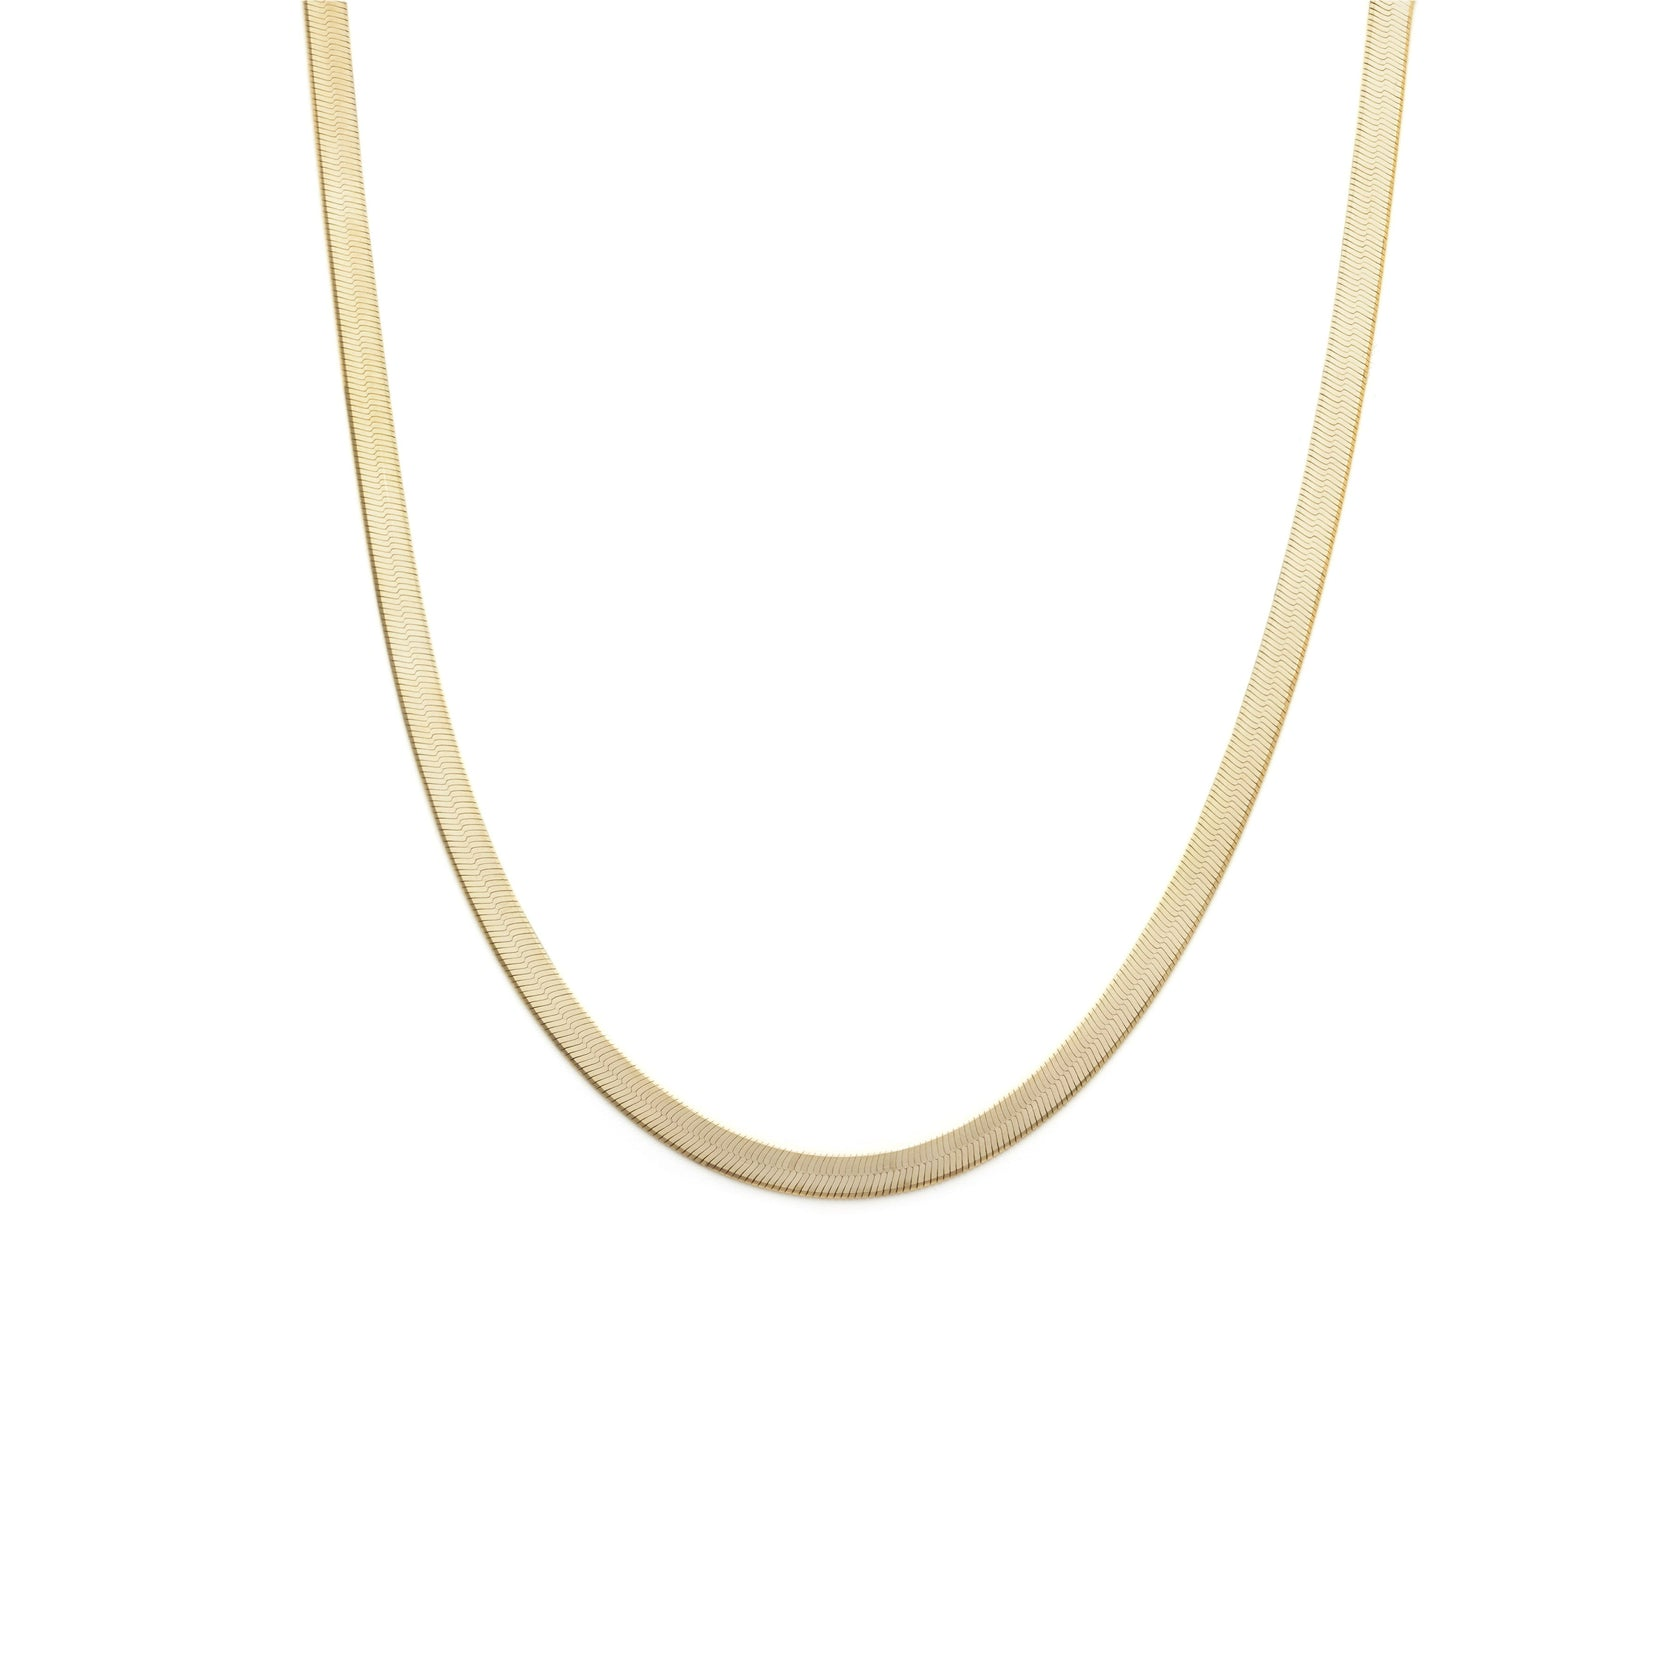 4.5mm Herringbone Chain - Gold Vermeil